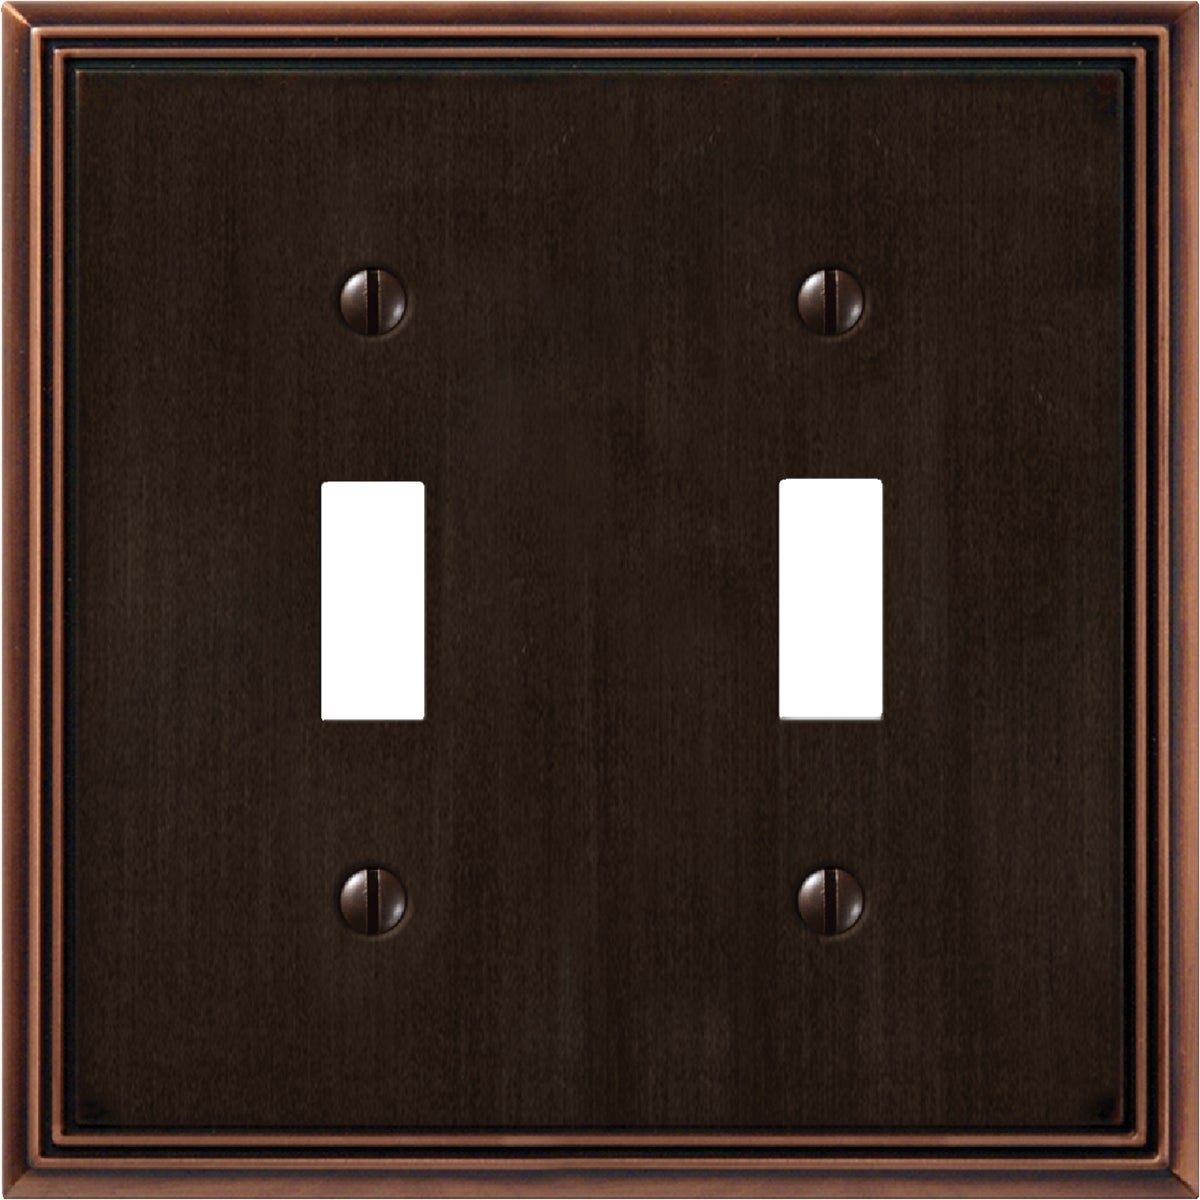 AB 2-TOGGLE WALLPLATE - 3102AZ by Jackson Deerfield Mf